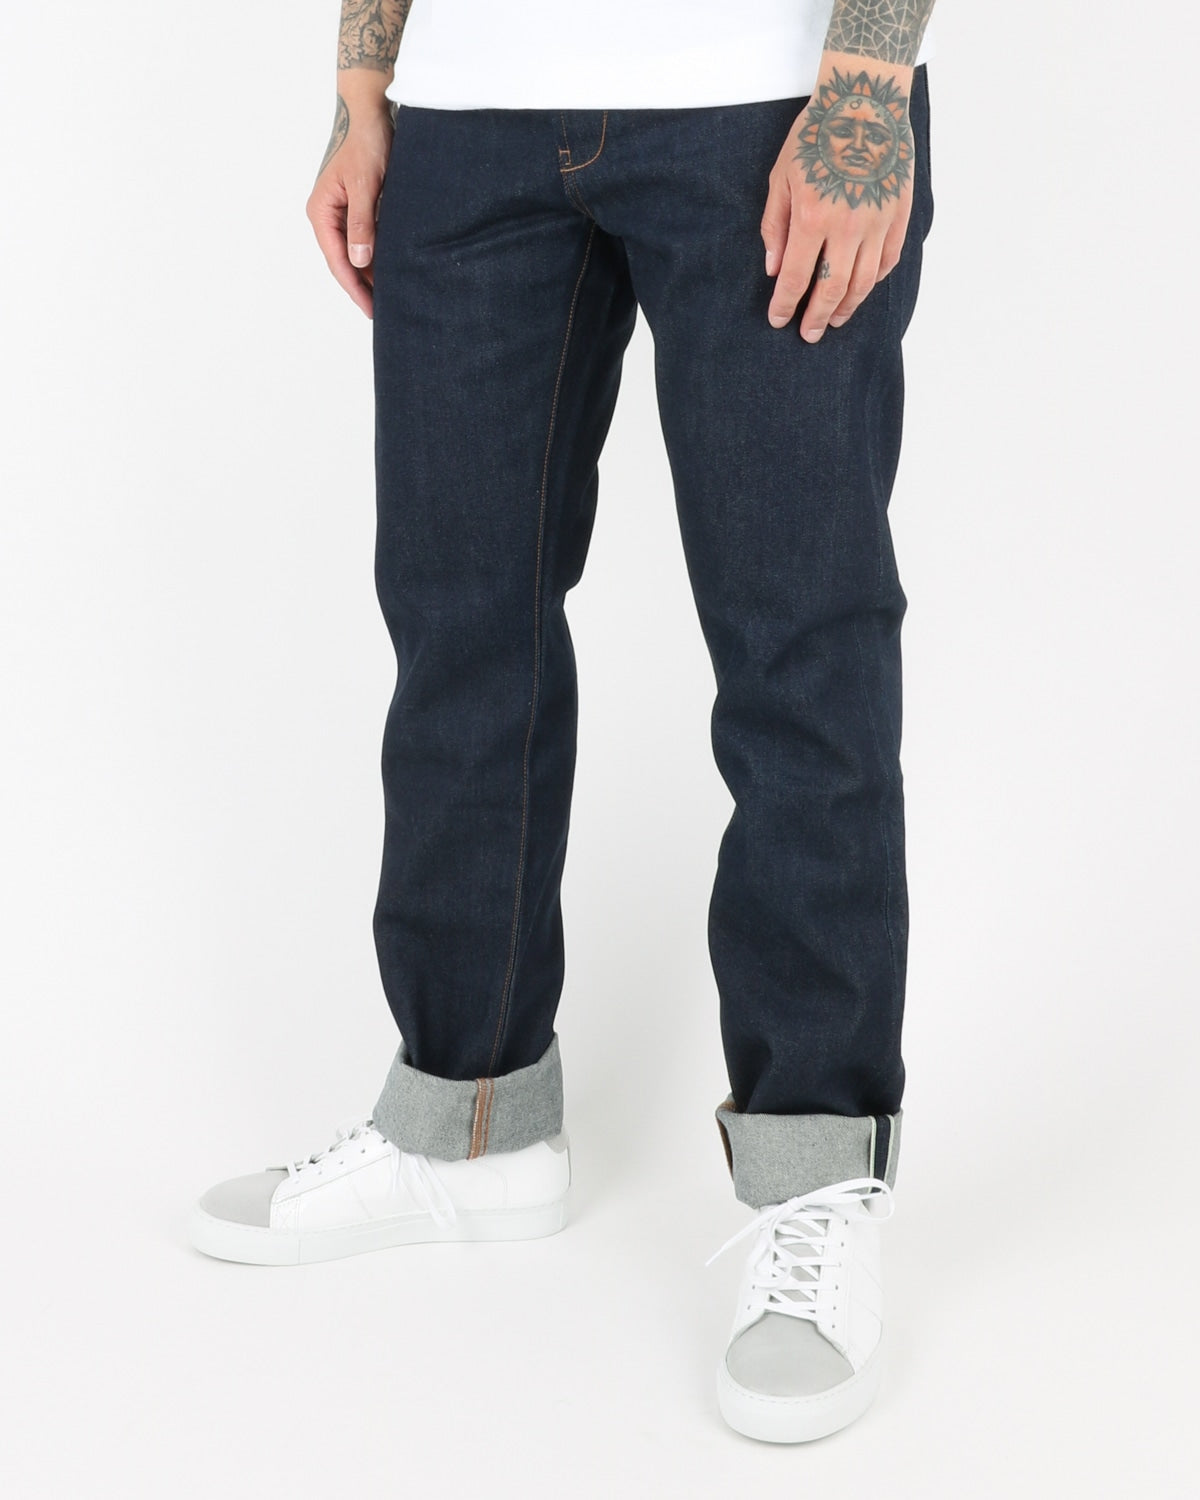 han kjobenhavn_tapered jeans_dark blue raw_view_3_3